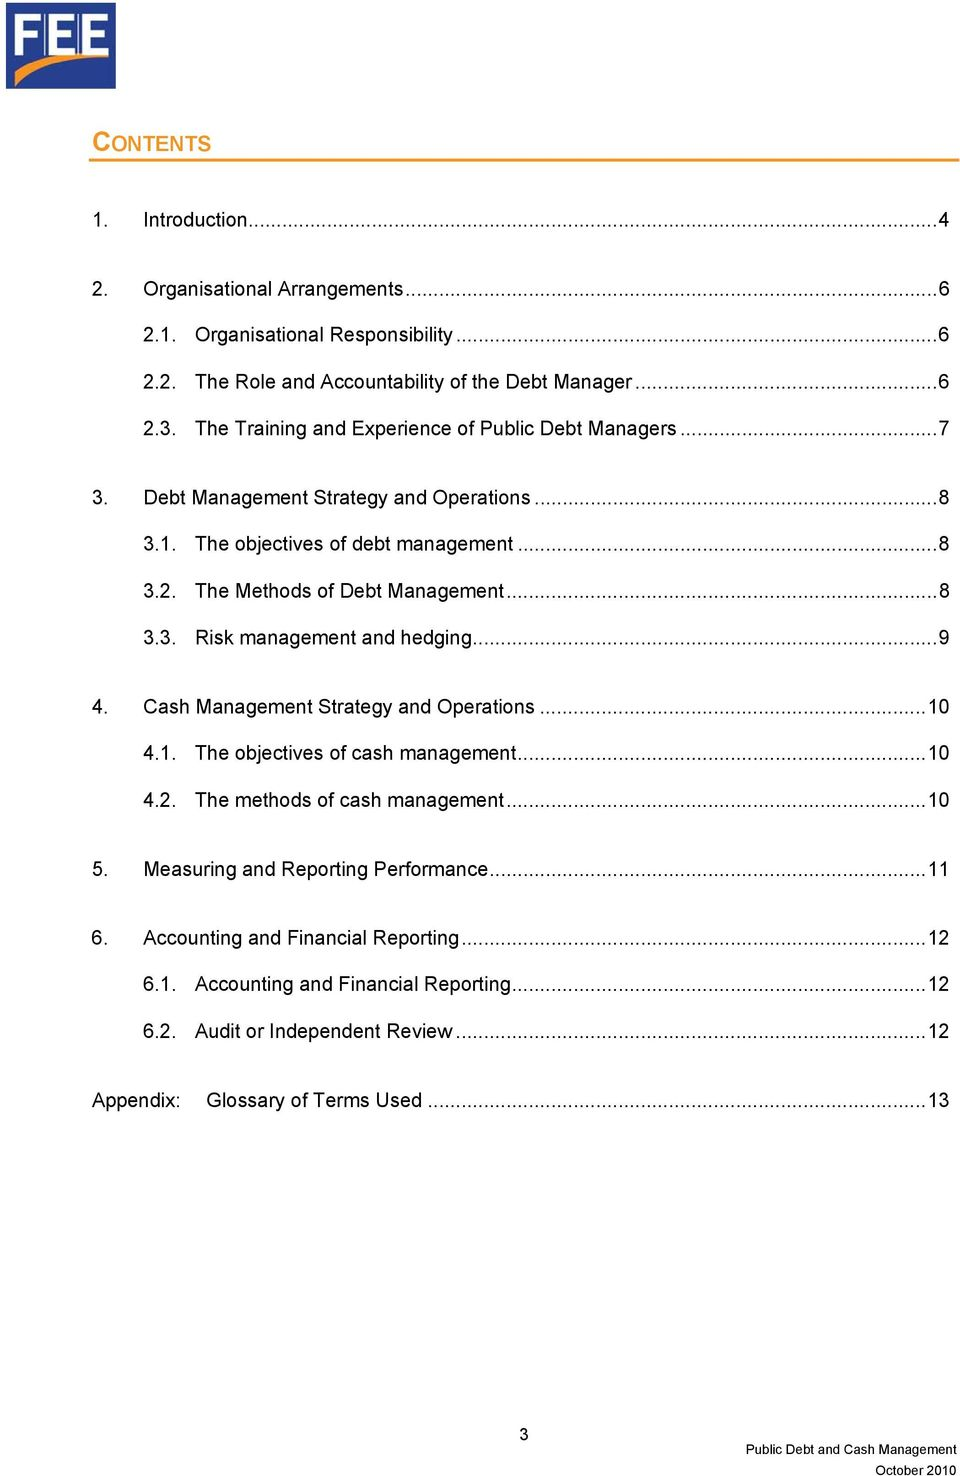 ..8 3.3. Risk management and hedging...9 4. Cash Management Strategy and Operations...10 4.1. The objectives of cash management...10 4.2. The methods of cash management...10 5.